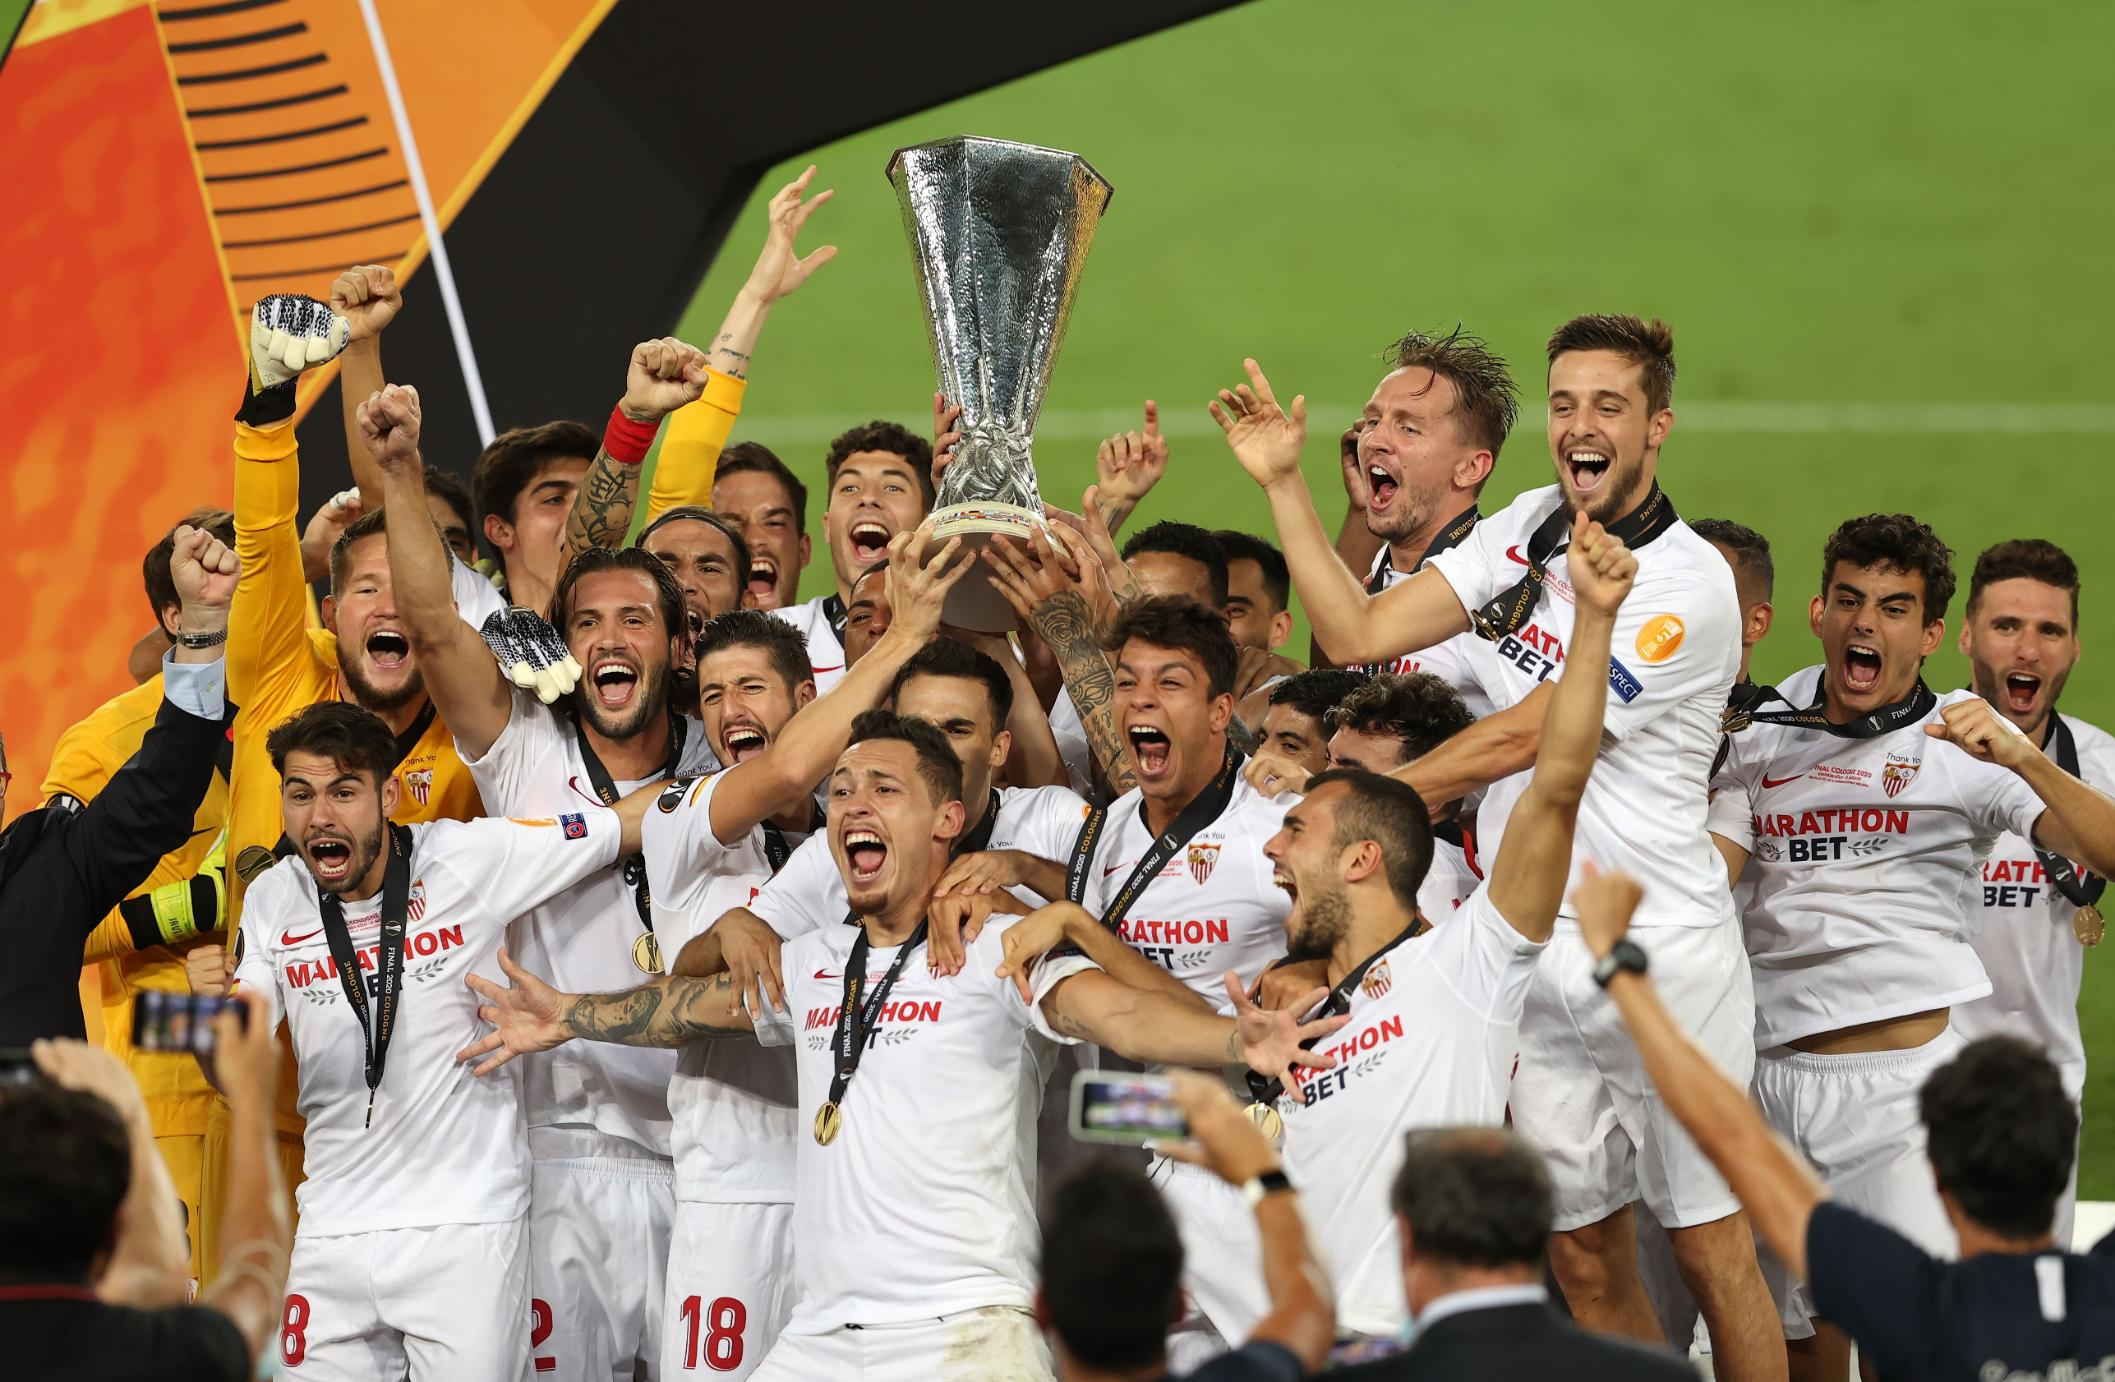 Sevilla continues Europa League love affair with final victory over Inter Milan